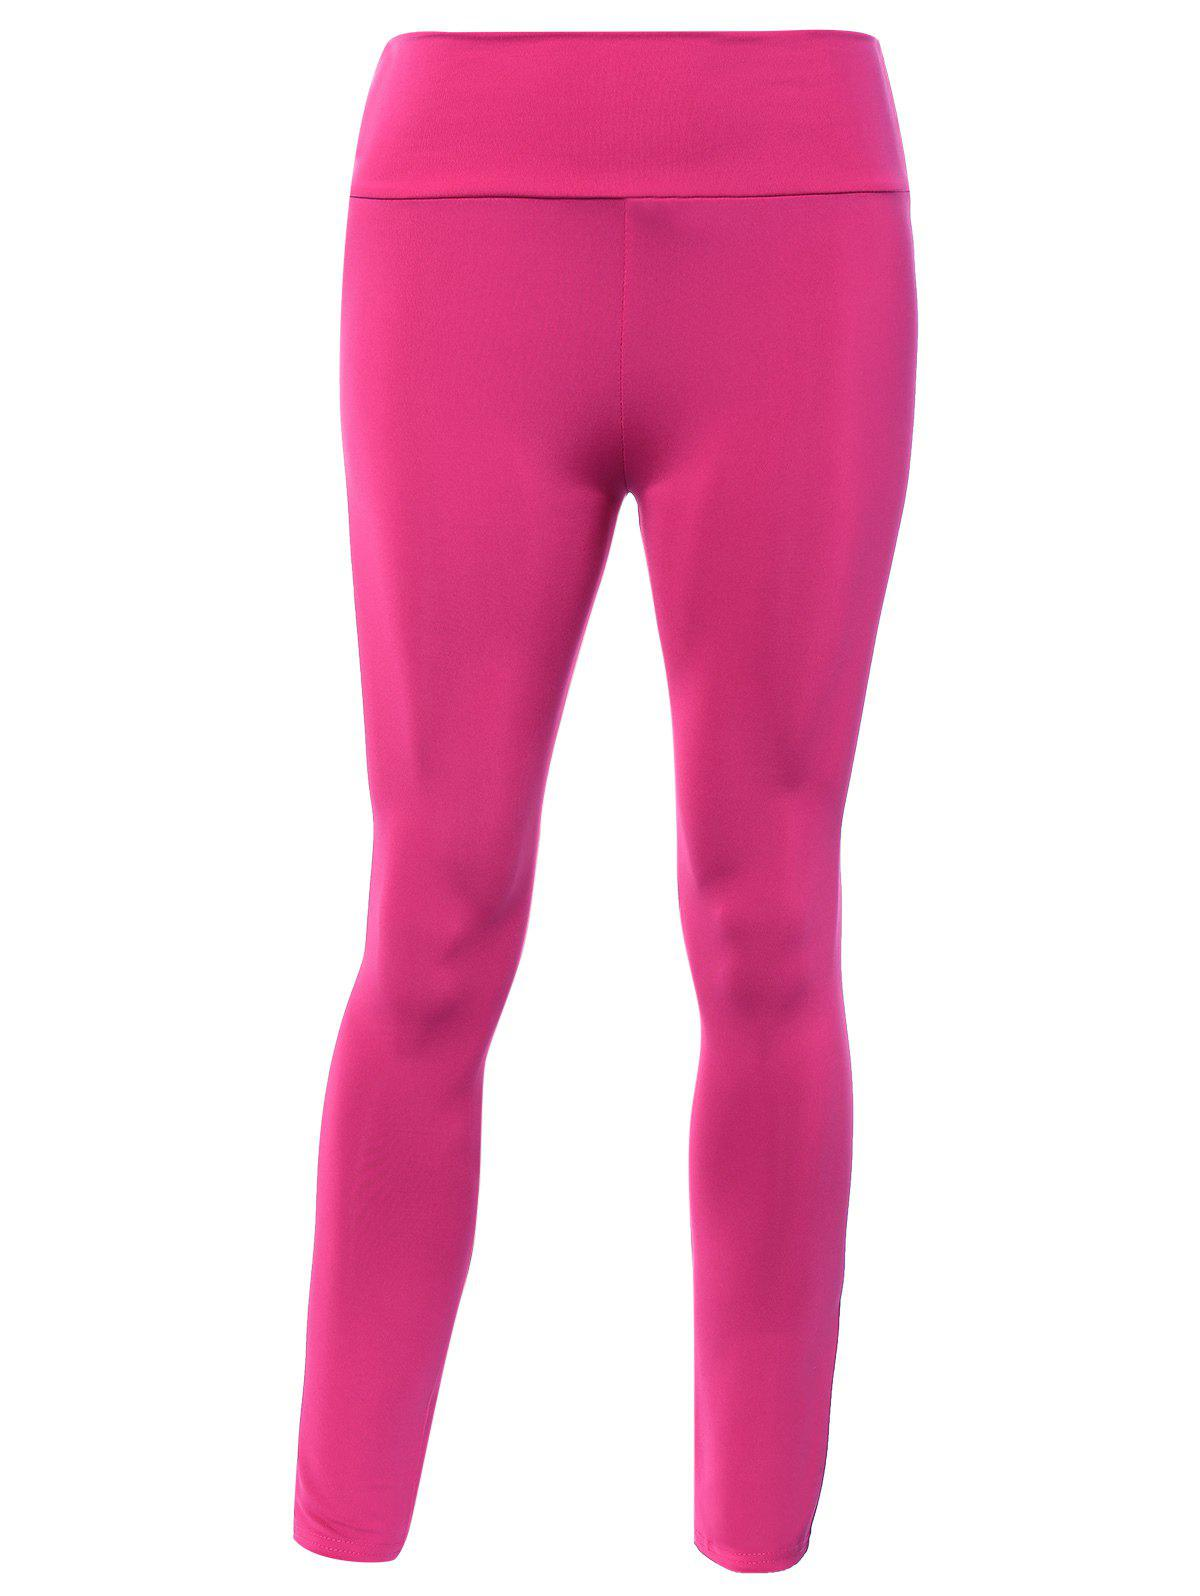 Stretched High Waisted Yoga Leggings - ROSE RED ONE SIZE